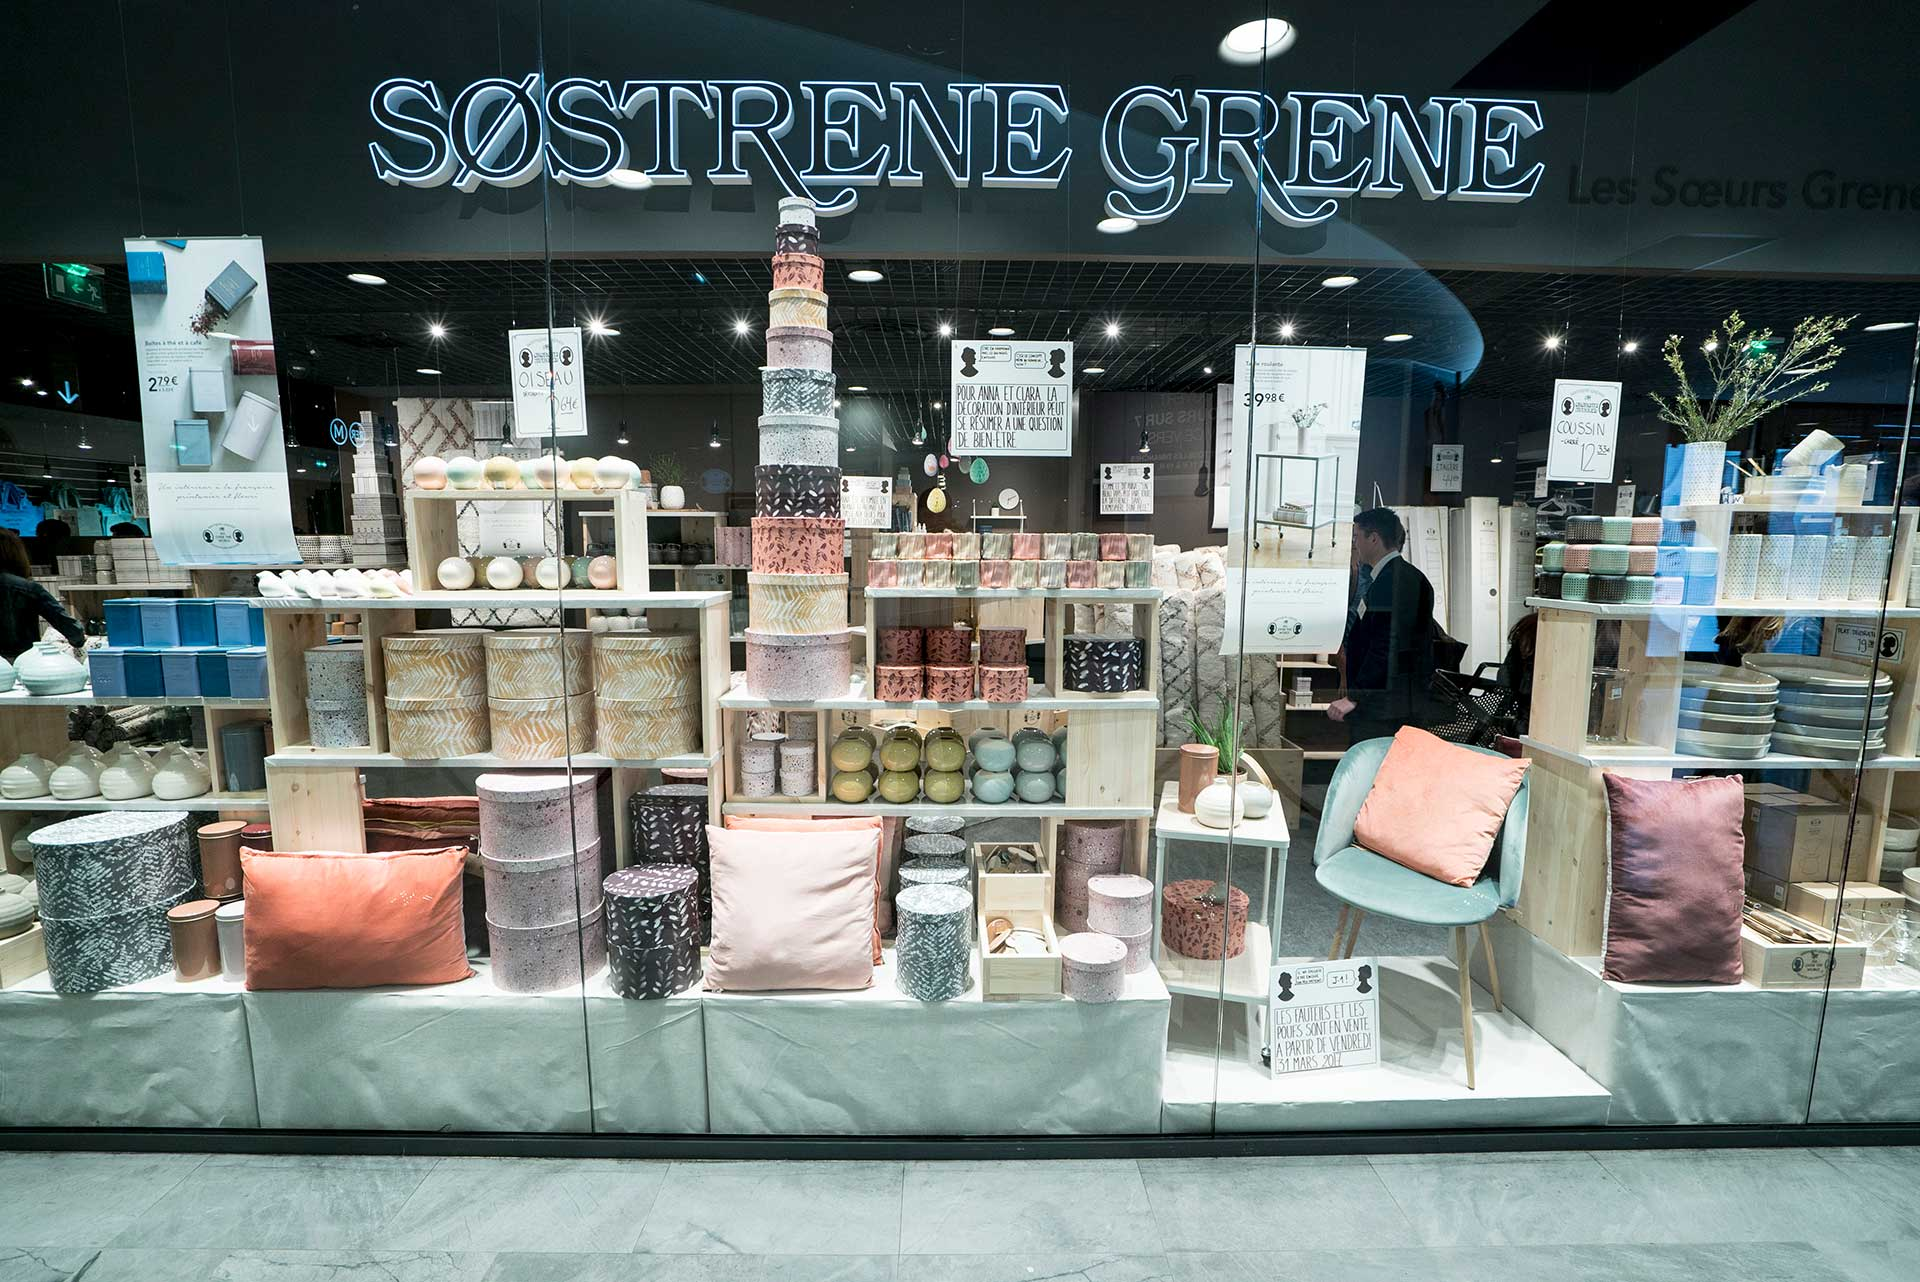 Picture of: Sostrene Grene Detailforum